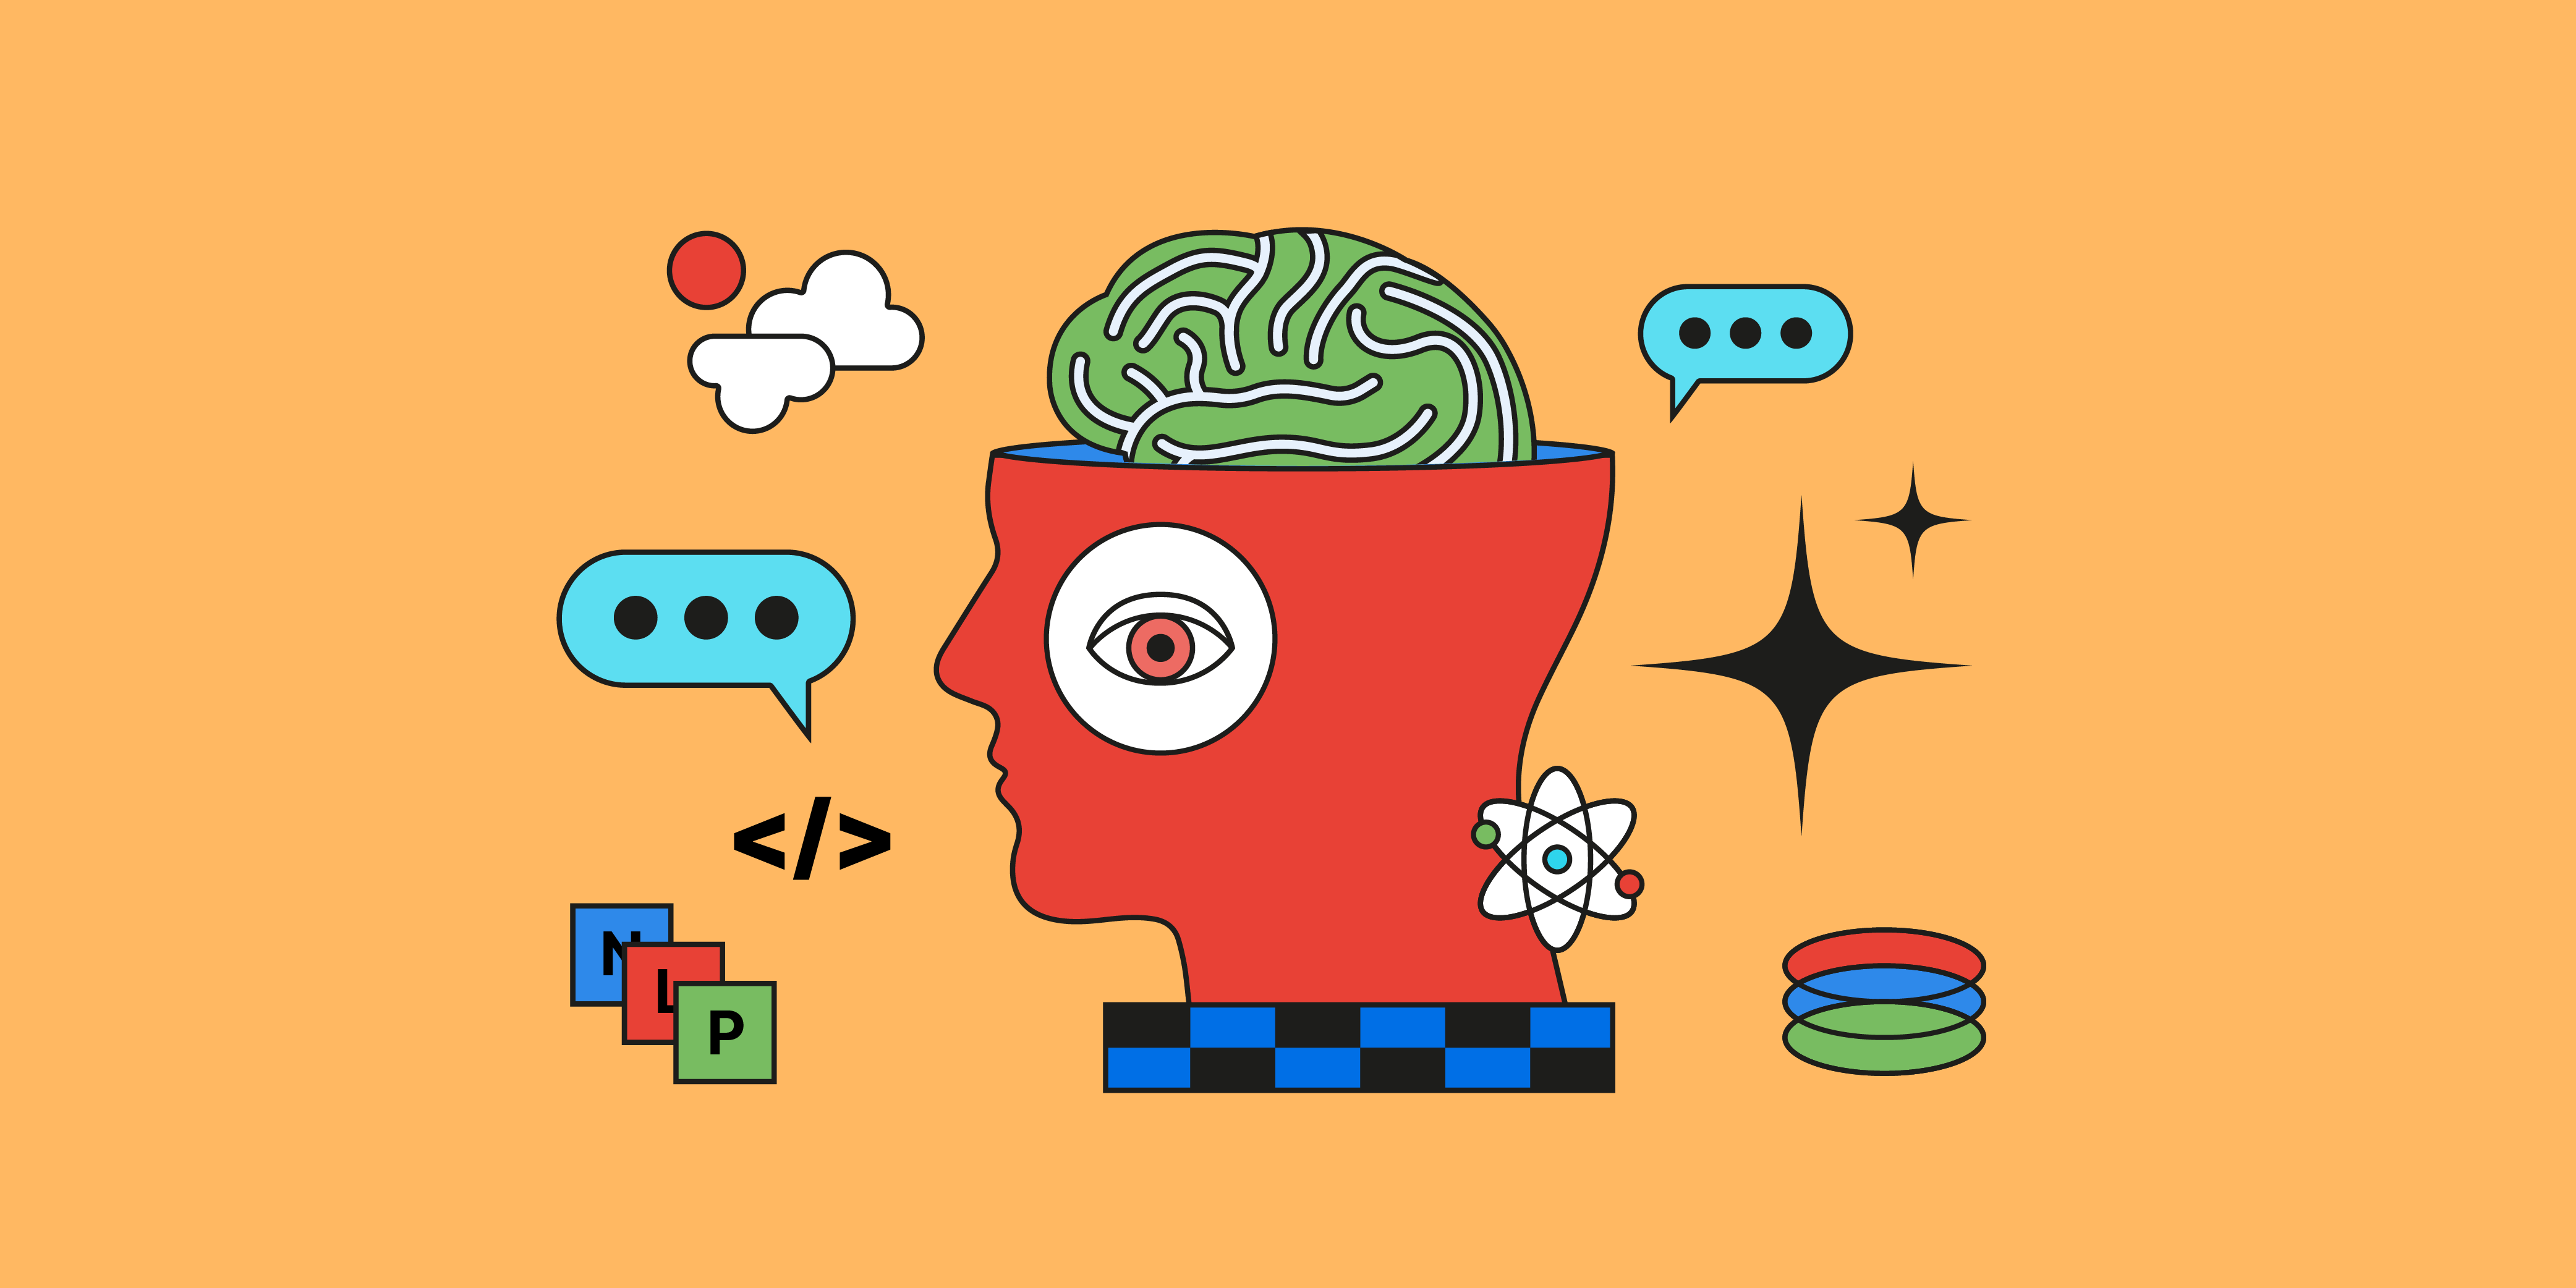 We discuss Natural Language Processing (NLP) and how it has supported businesses with tech innovations such as Kata.ai's conversational AI and chatbots solution.